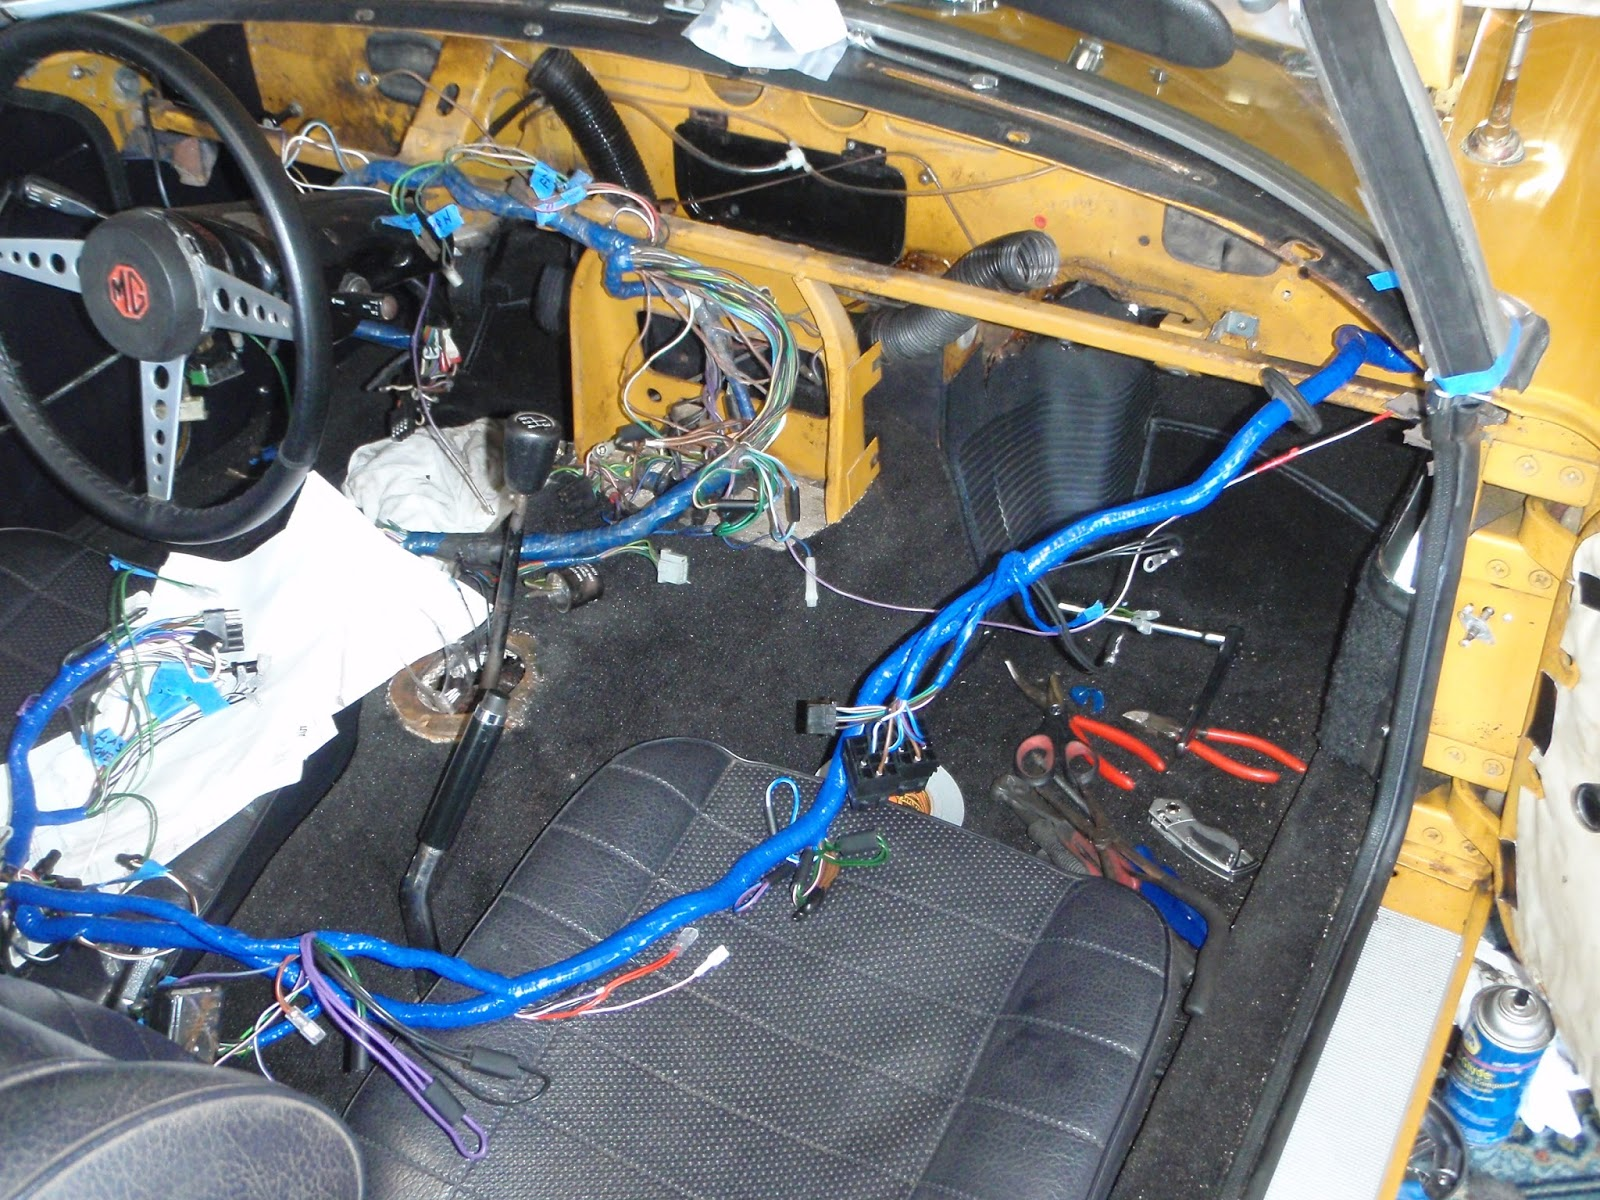 Mgb Alternator Wiring Diagram : Mgb in the garage new wiring harness vinyl top